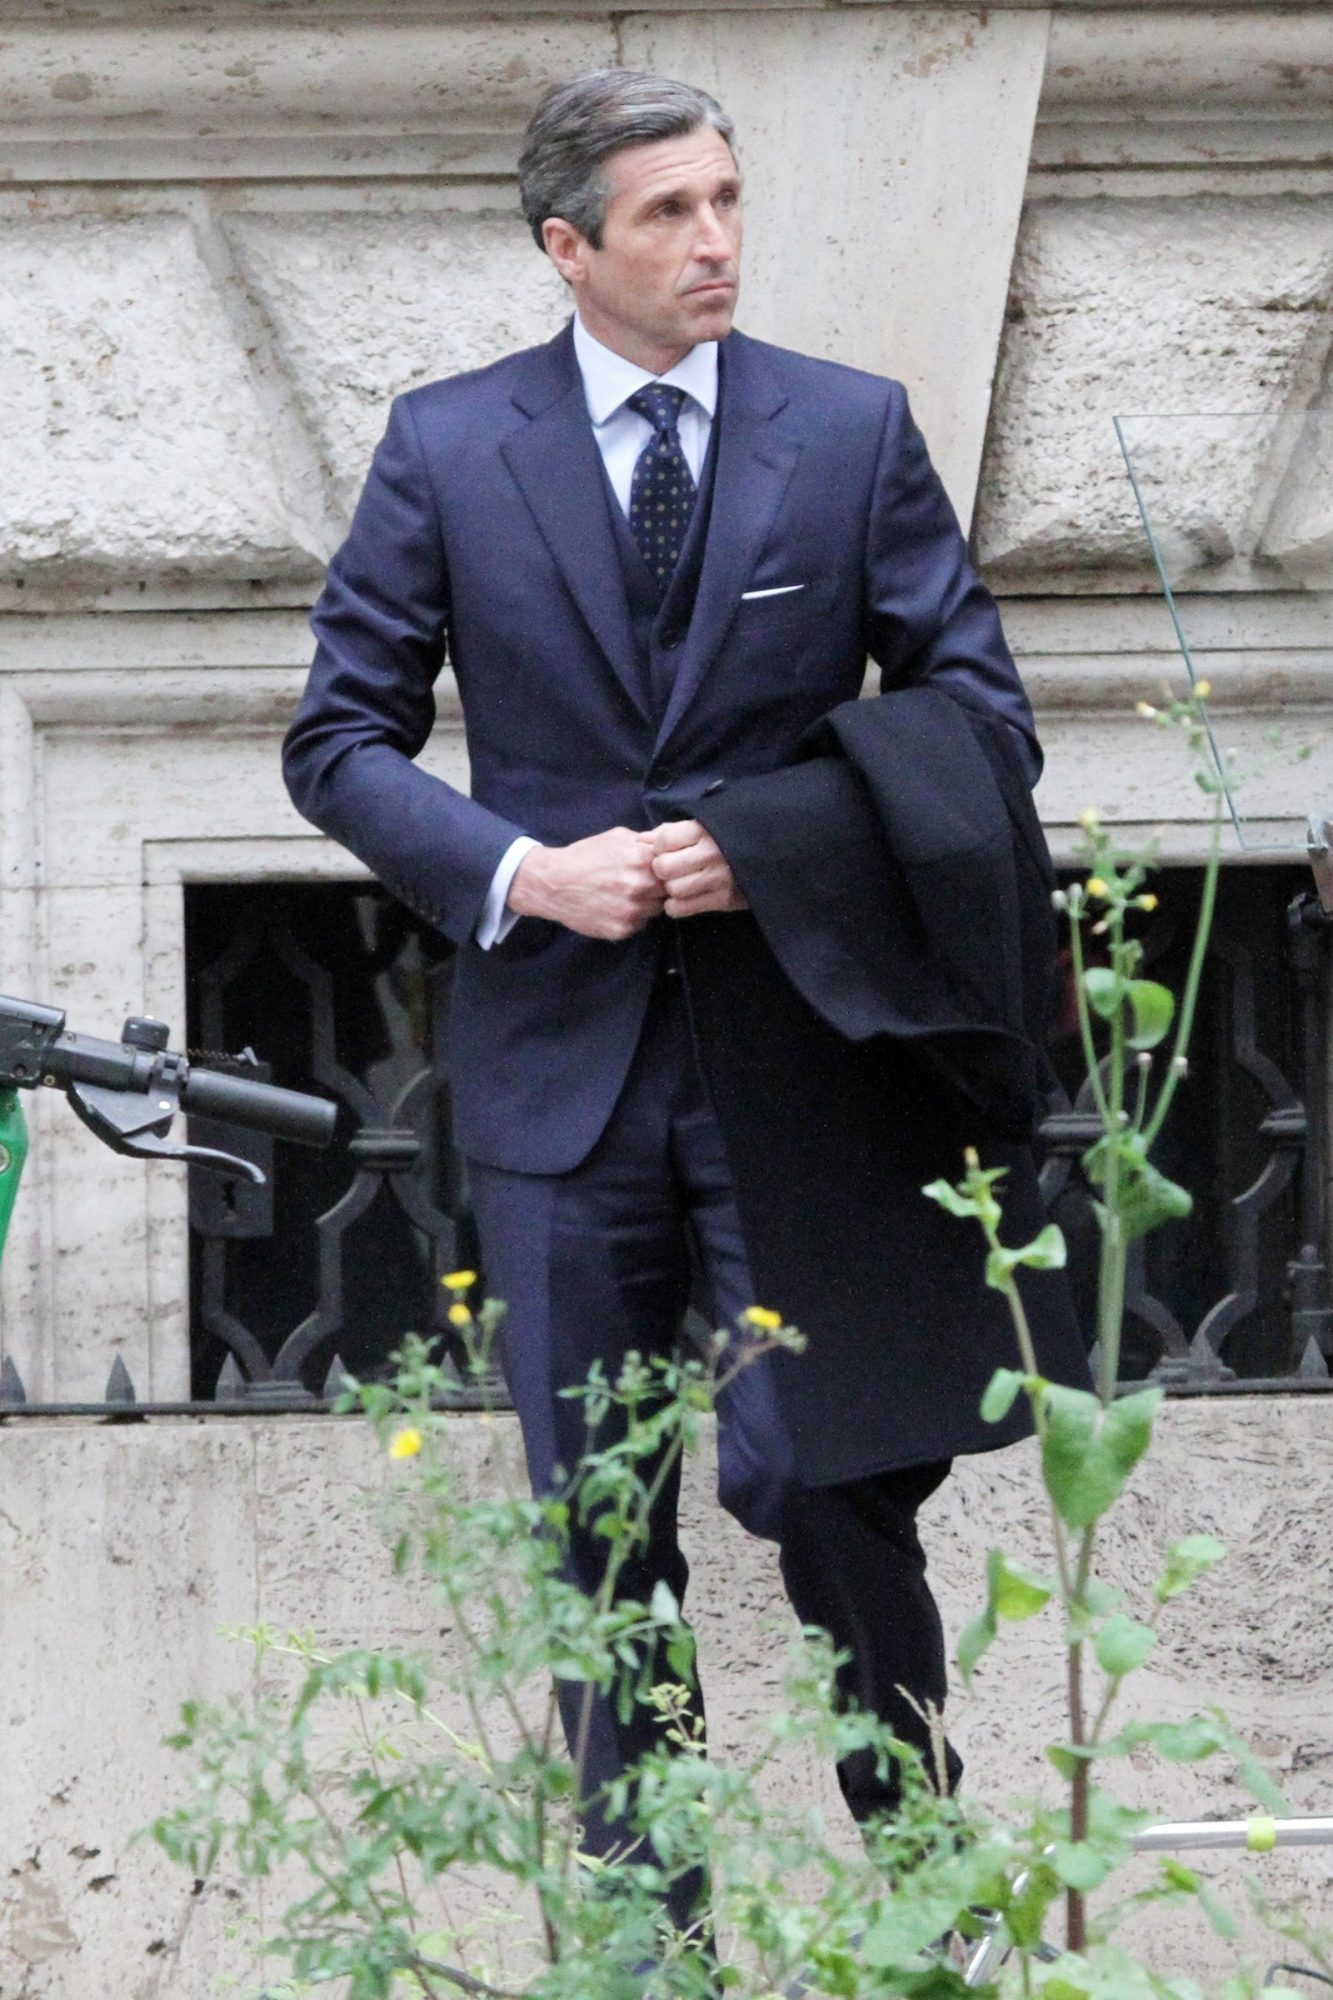 Filming of the second Devils TV series starring Patrick Dempsey and Pia Mechler has begun. Patrick gets help suiting up by the costume team as he films with co-star Pia Mechler